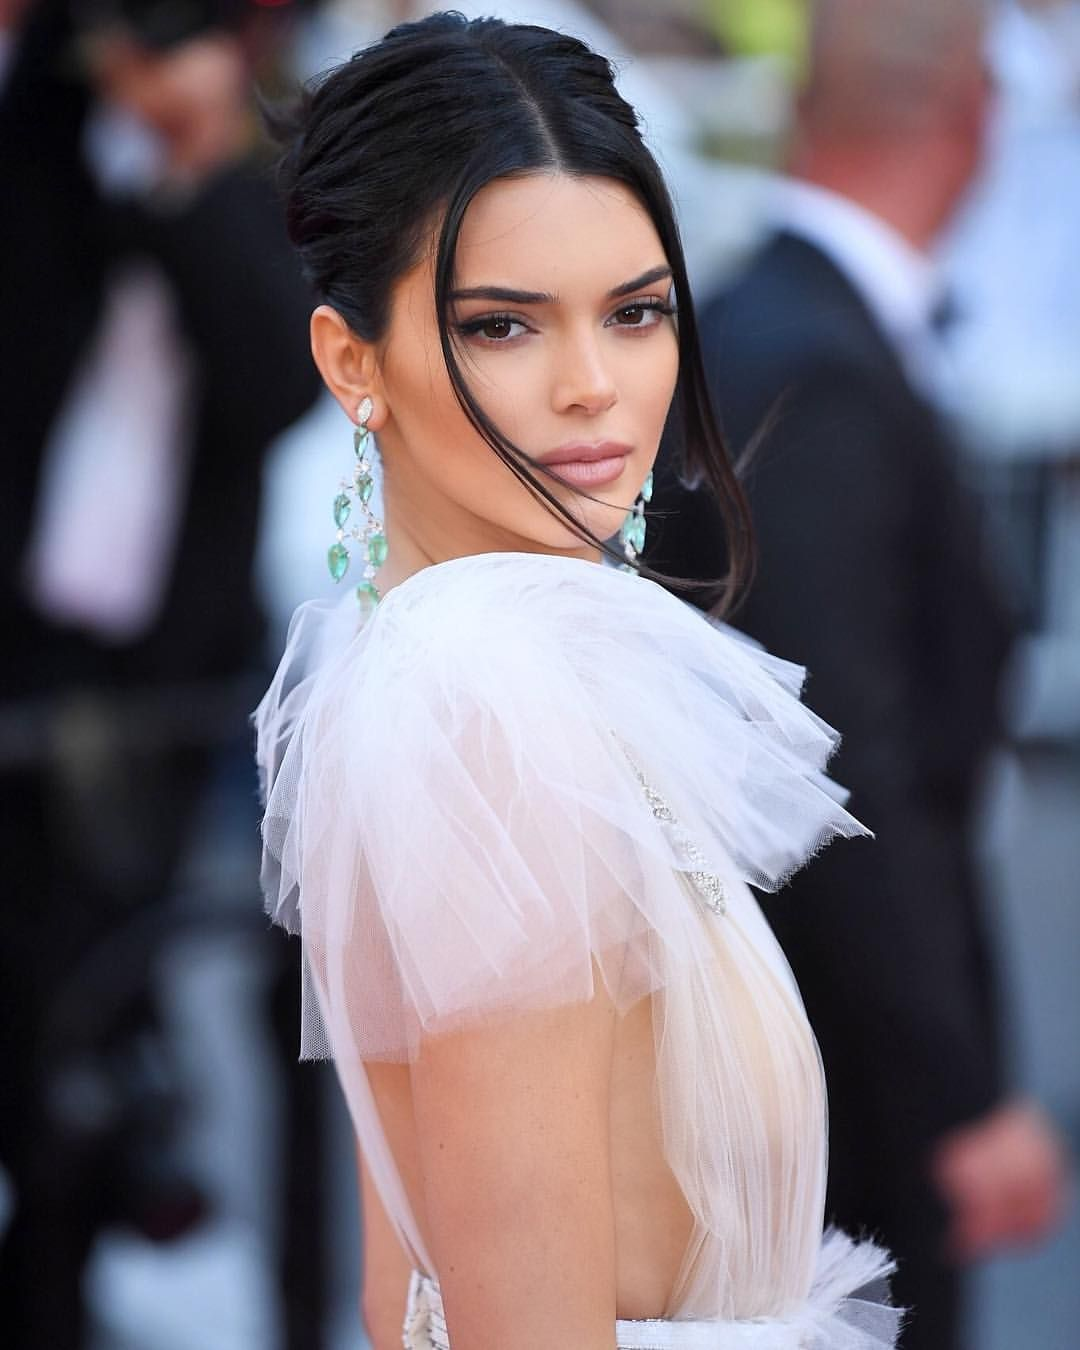 Kendall Jenner Cannes 2018 Red Carpet Hair By Jen Atkin Kendall Jenner Hair Jen Atkin Hair Kendall Jenner Outfits